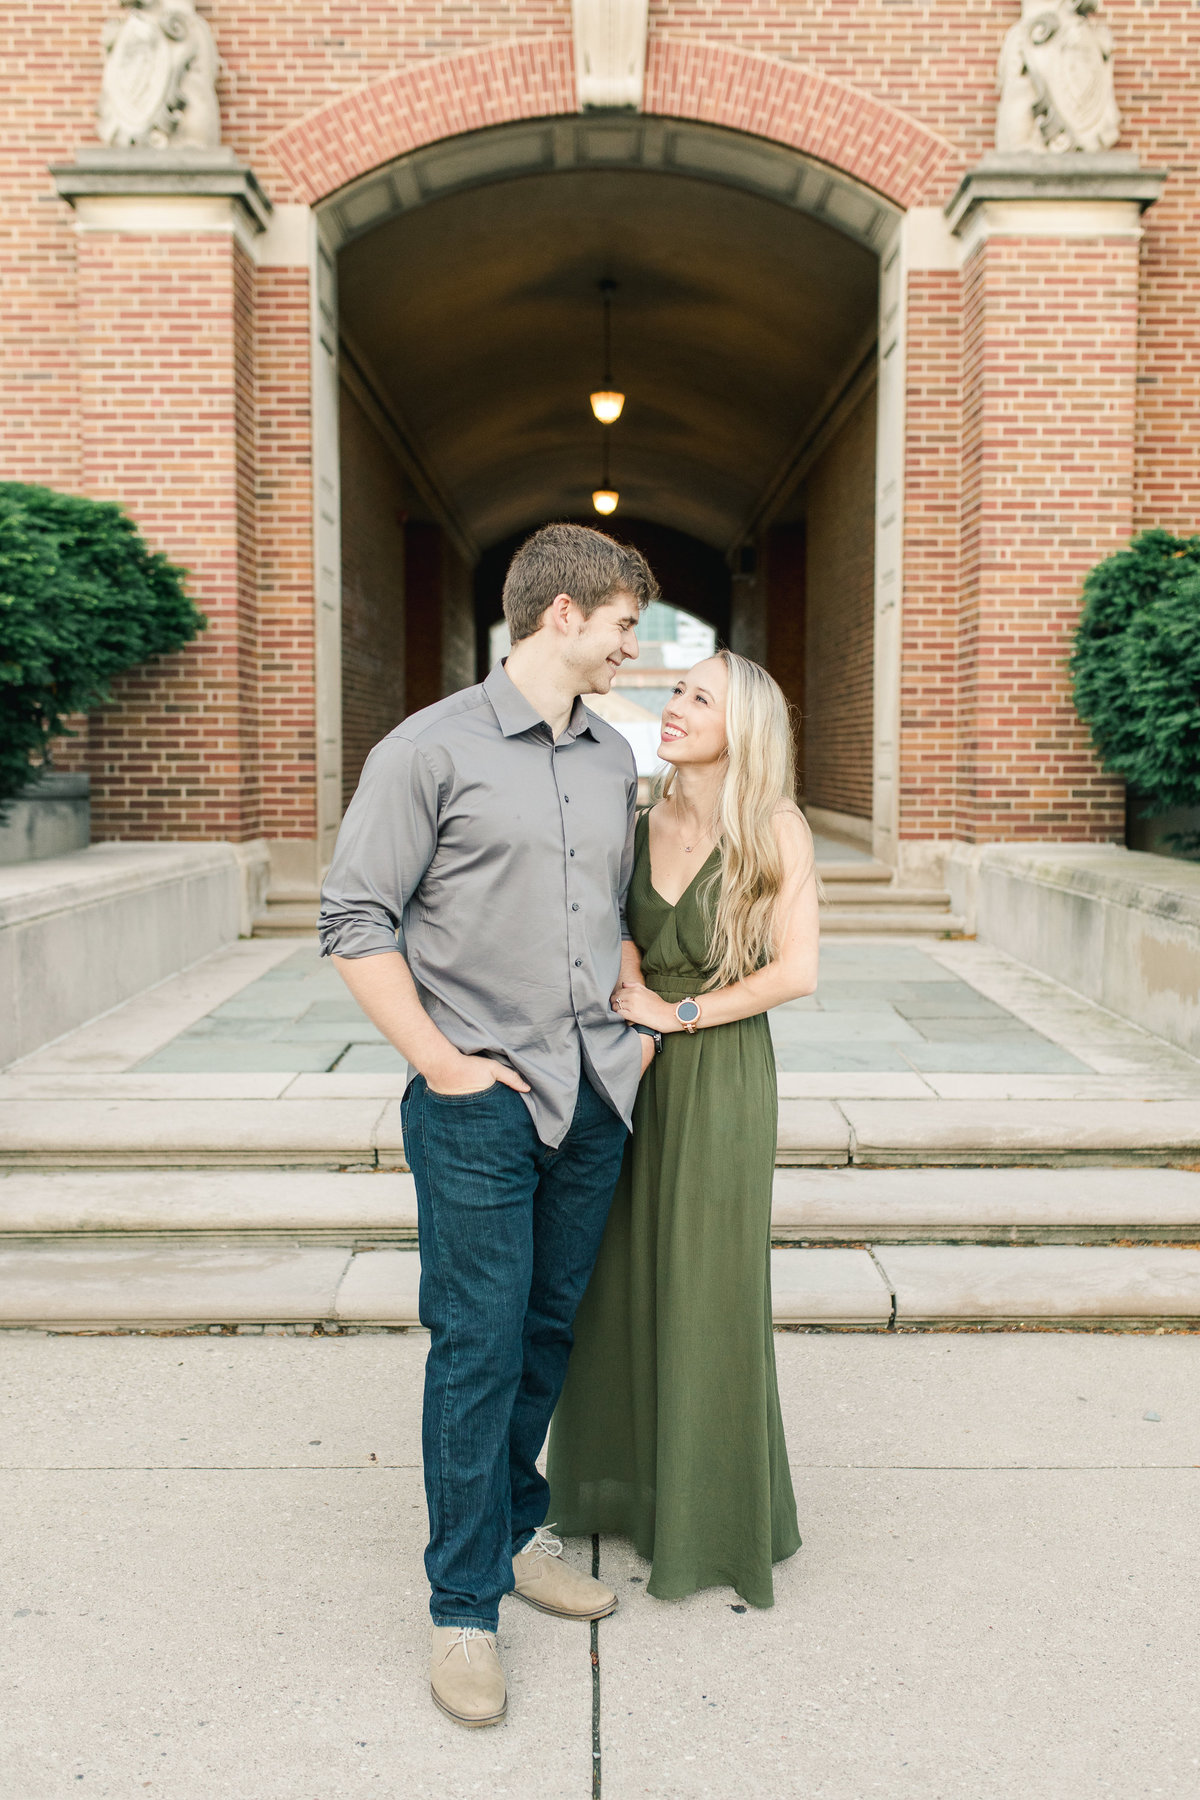 Engagement session at the University of Cincinnati